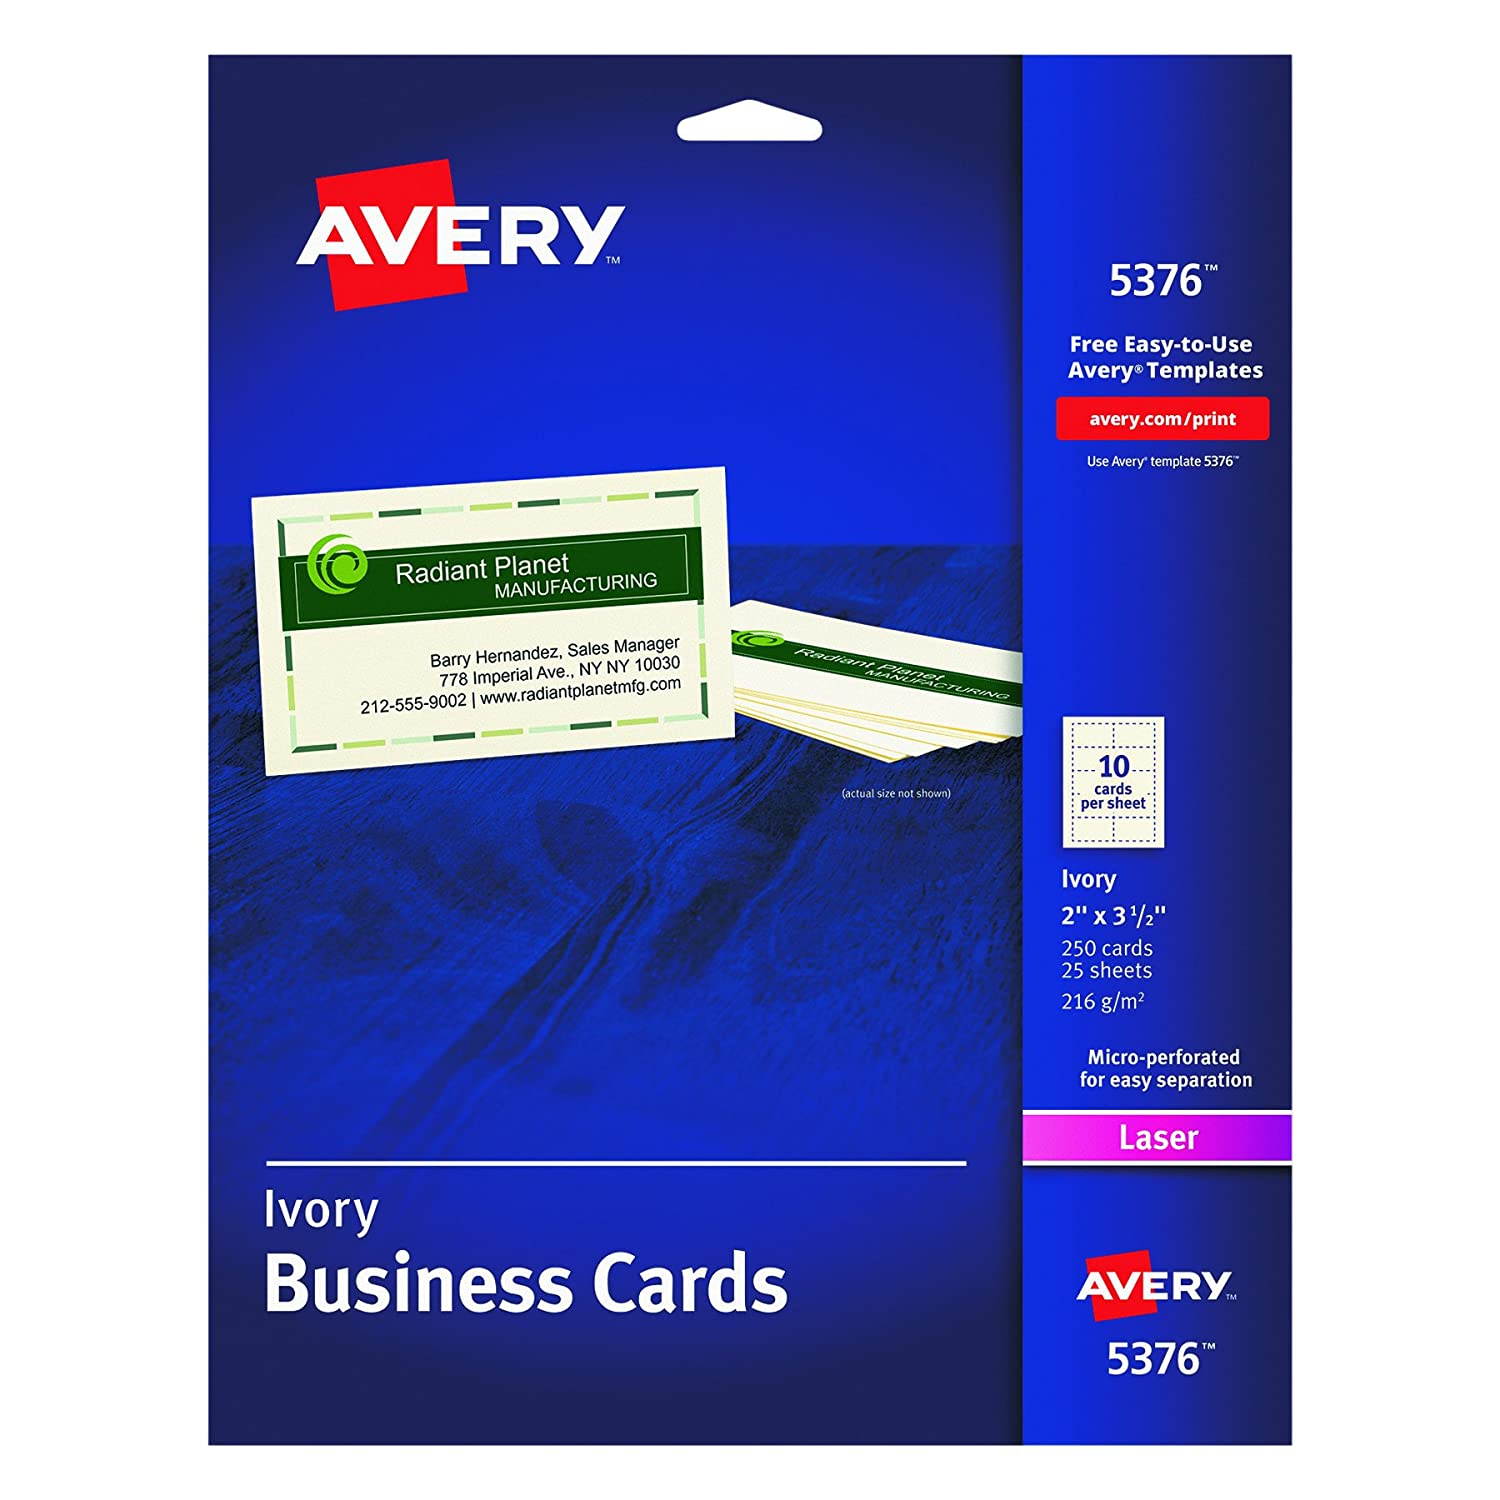 avery business cards for laser printers 5376 ivory